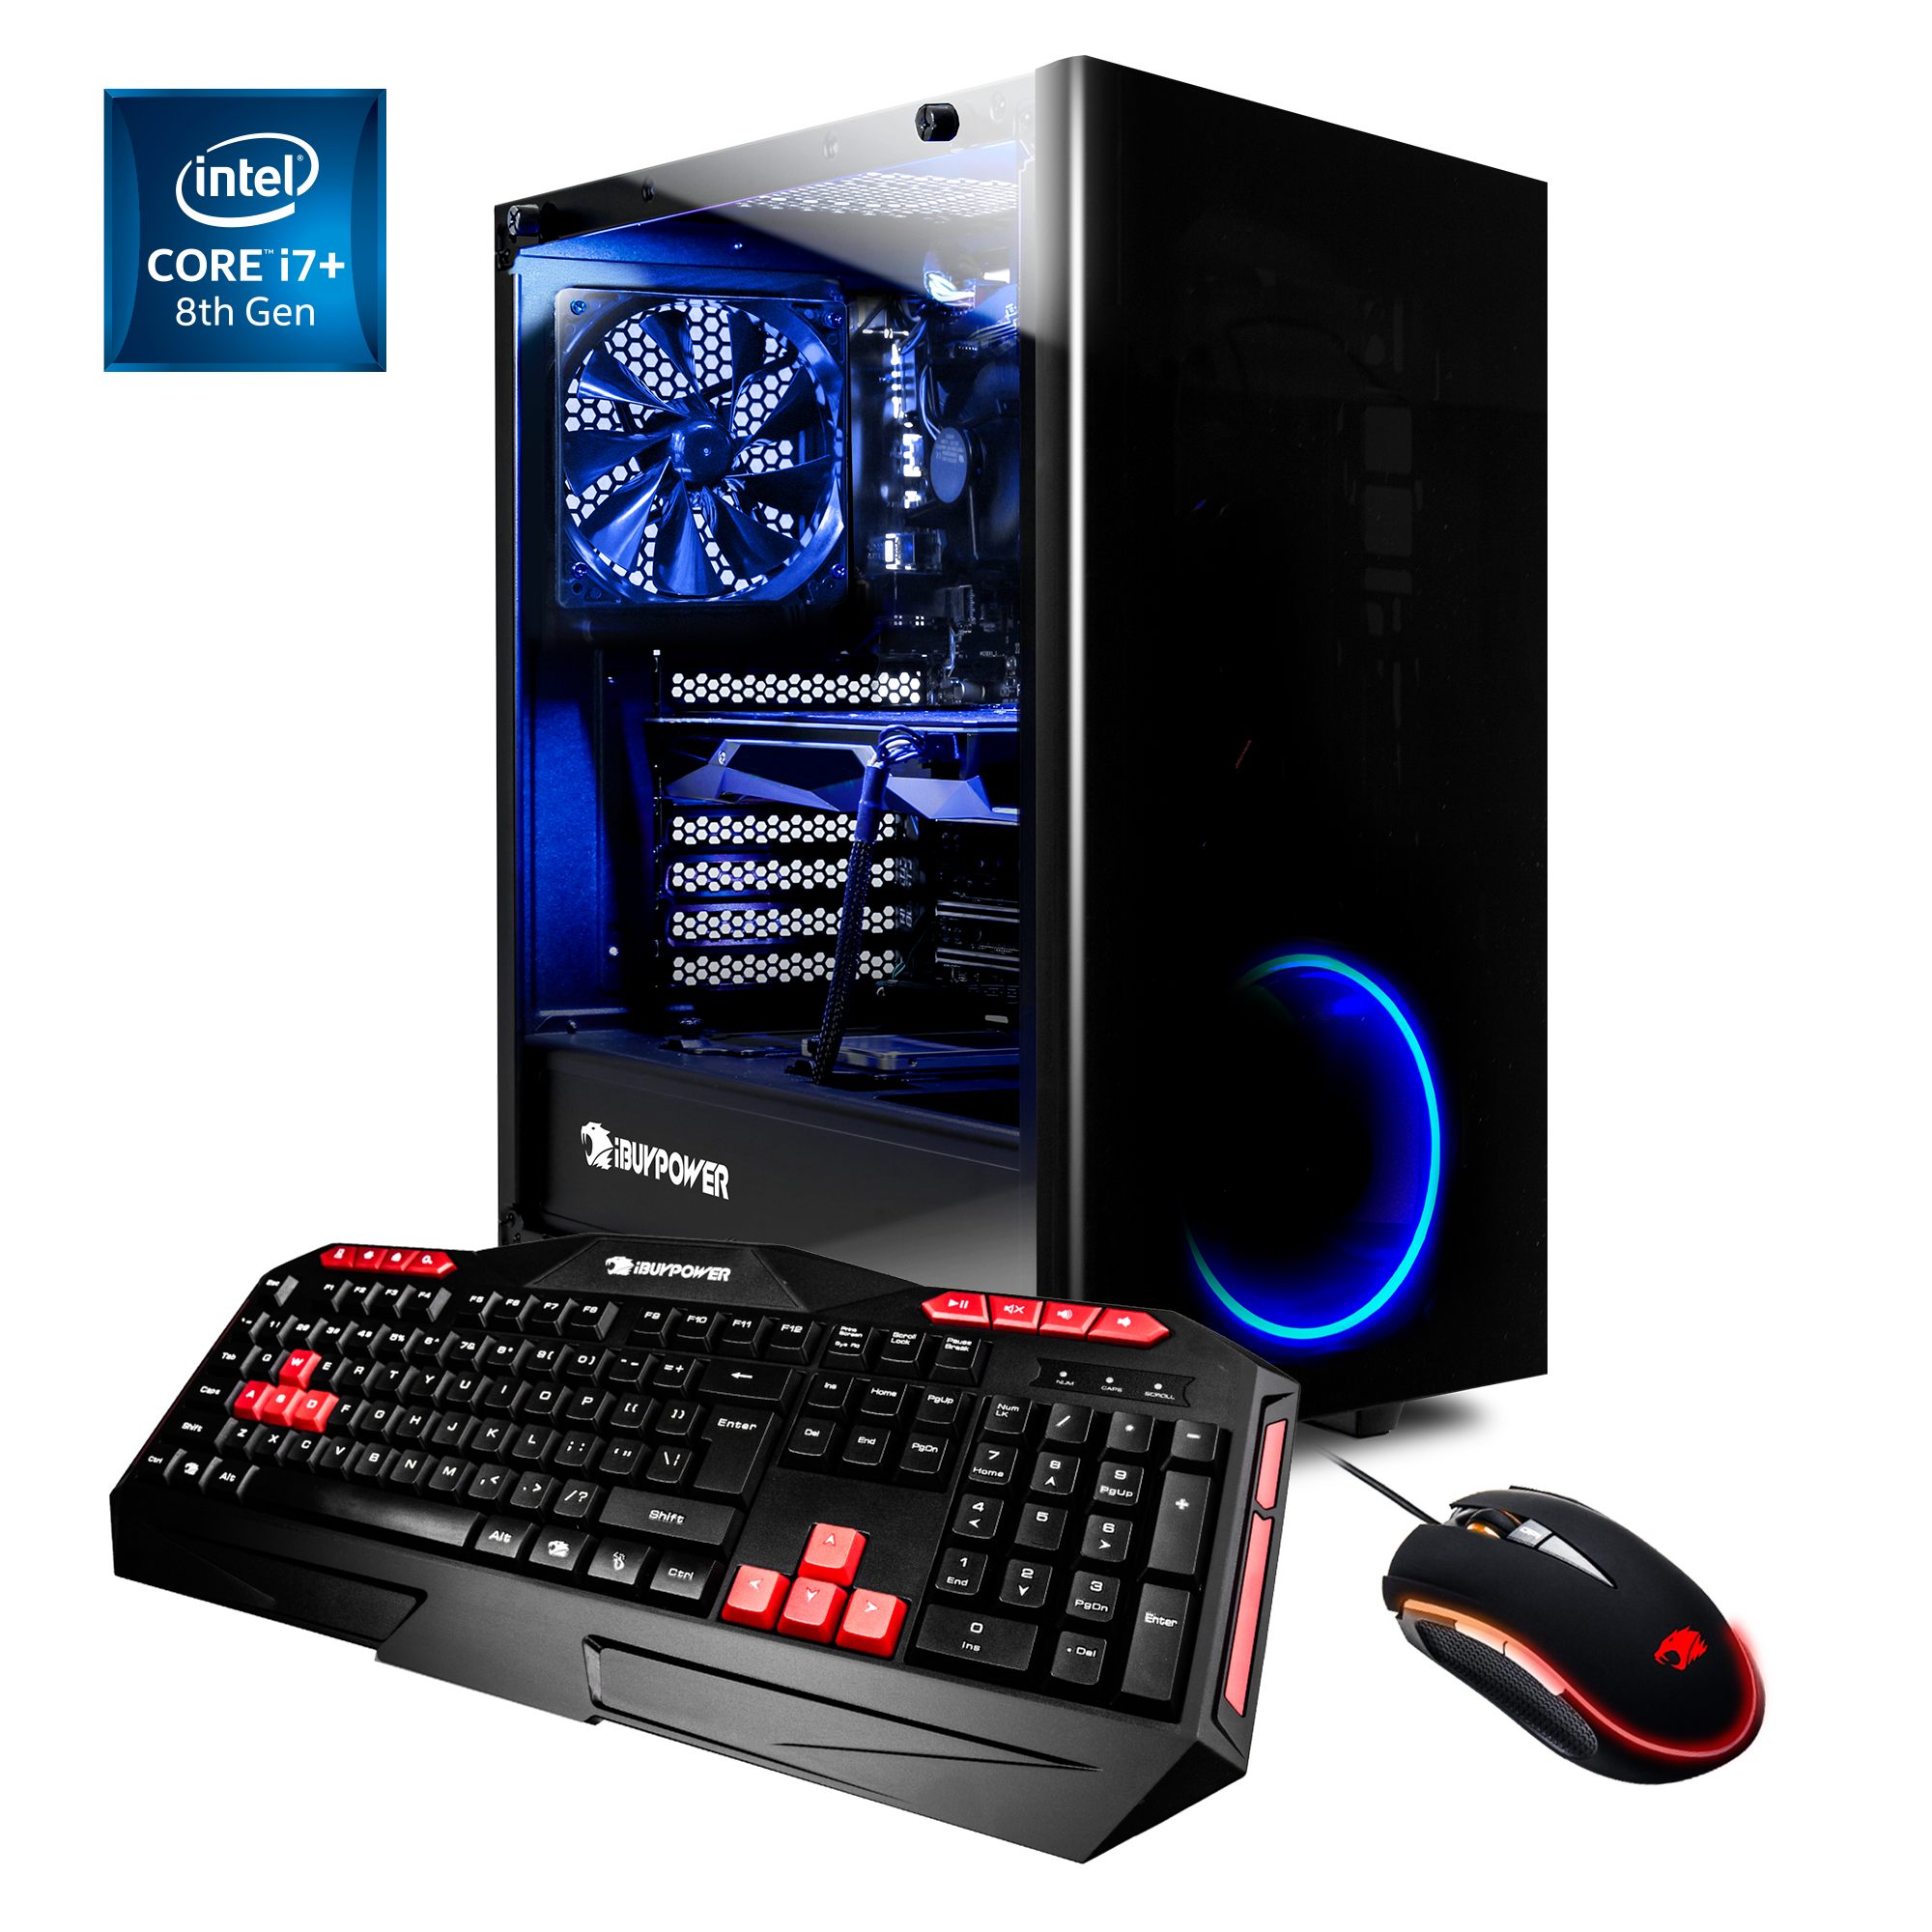 iBUYPOWER View21013i - Gaming Desktop PC - Intel i7 8700 - 16GB DDR4 Memory - AMD Radeon RX580 4GB - 2TB Hard Drive and 16GB Optane Memory - Wi-Fi. - View21013i